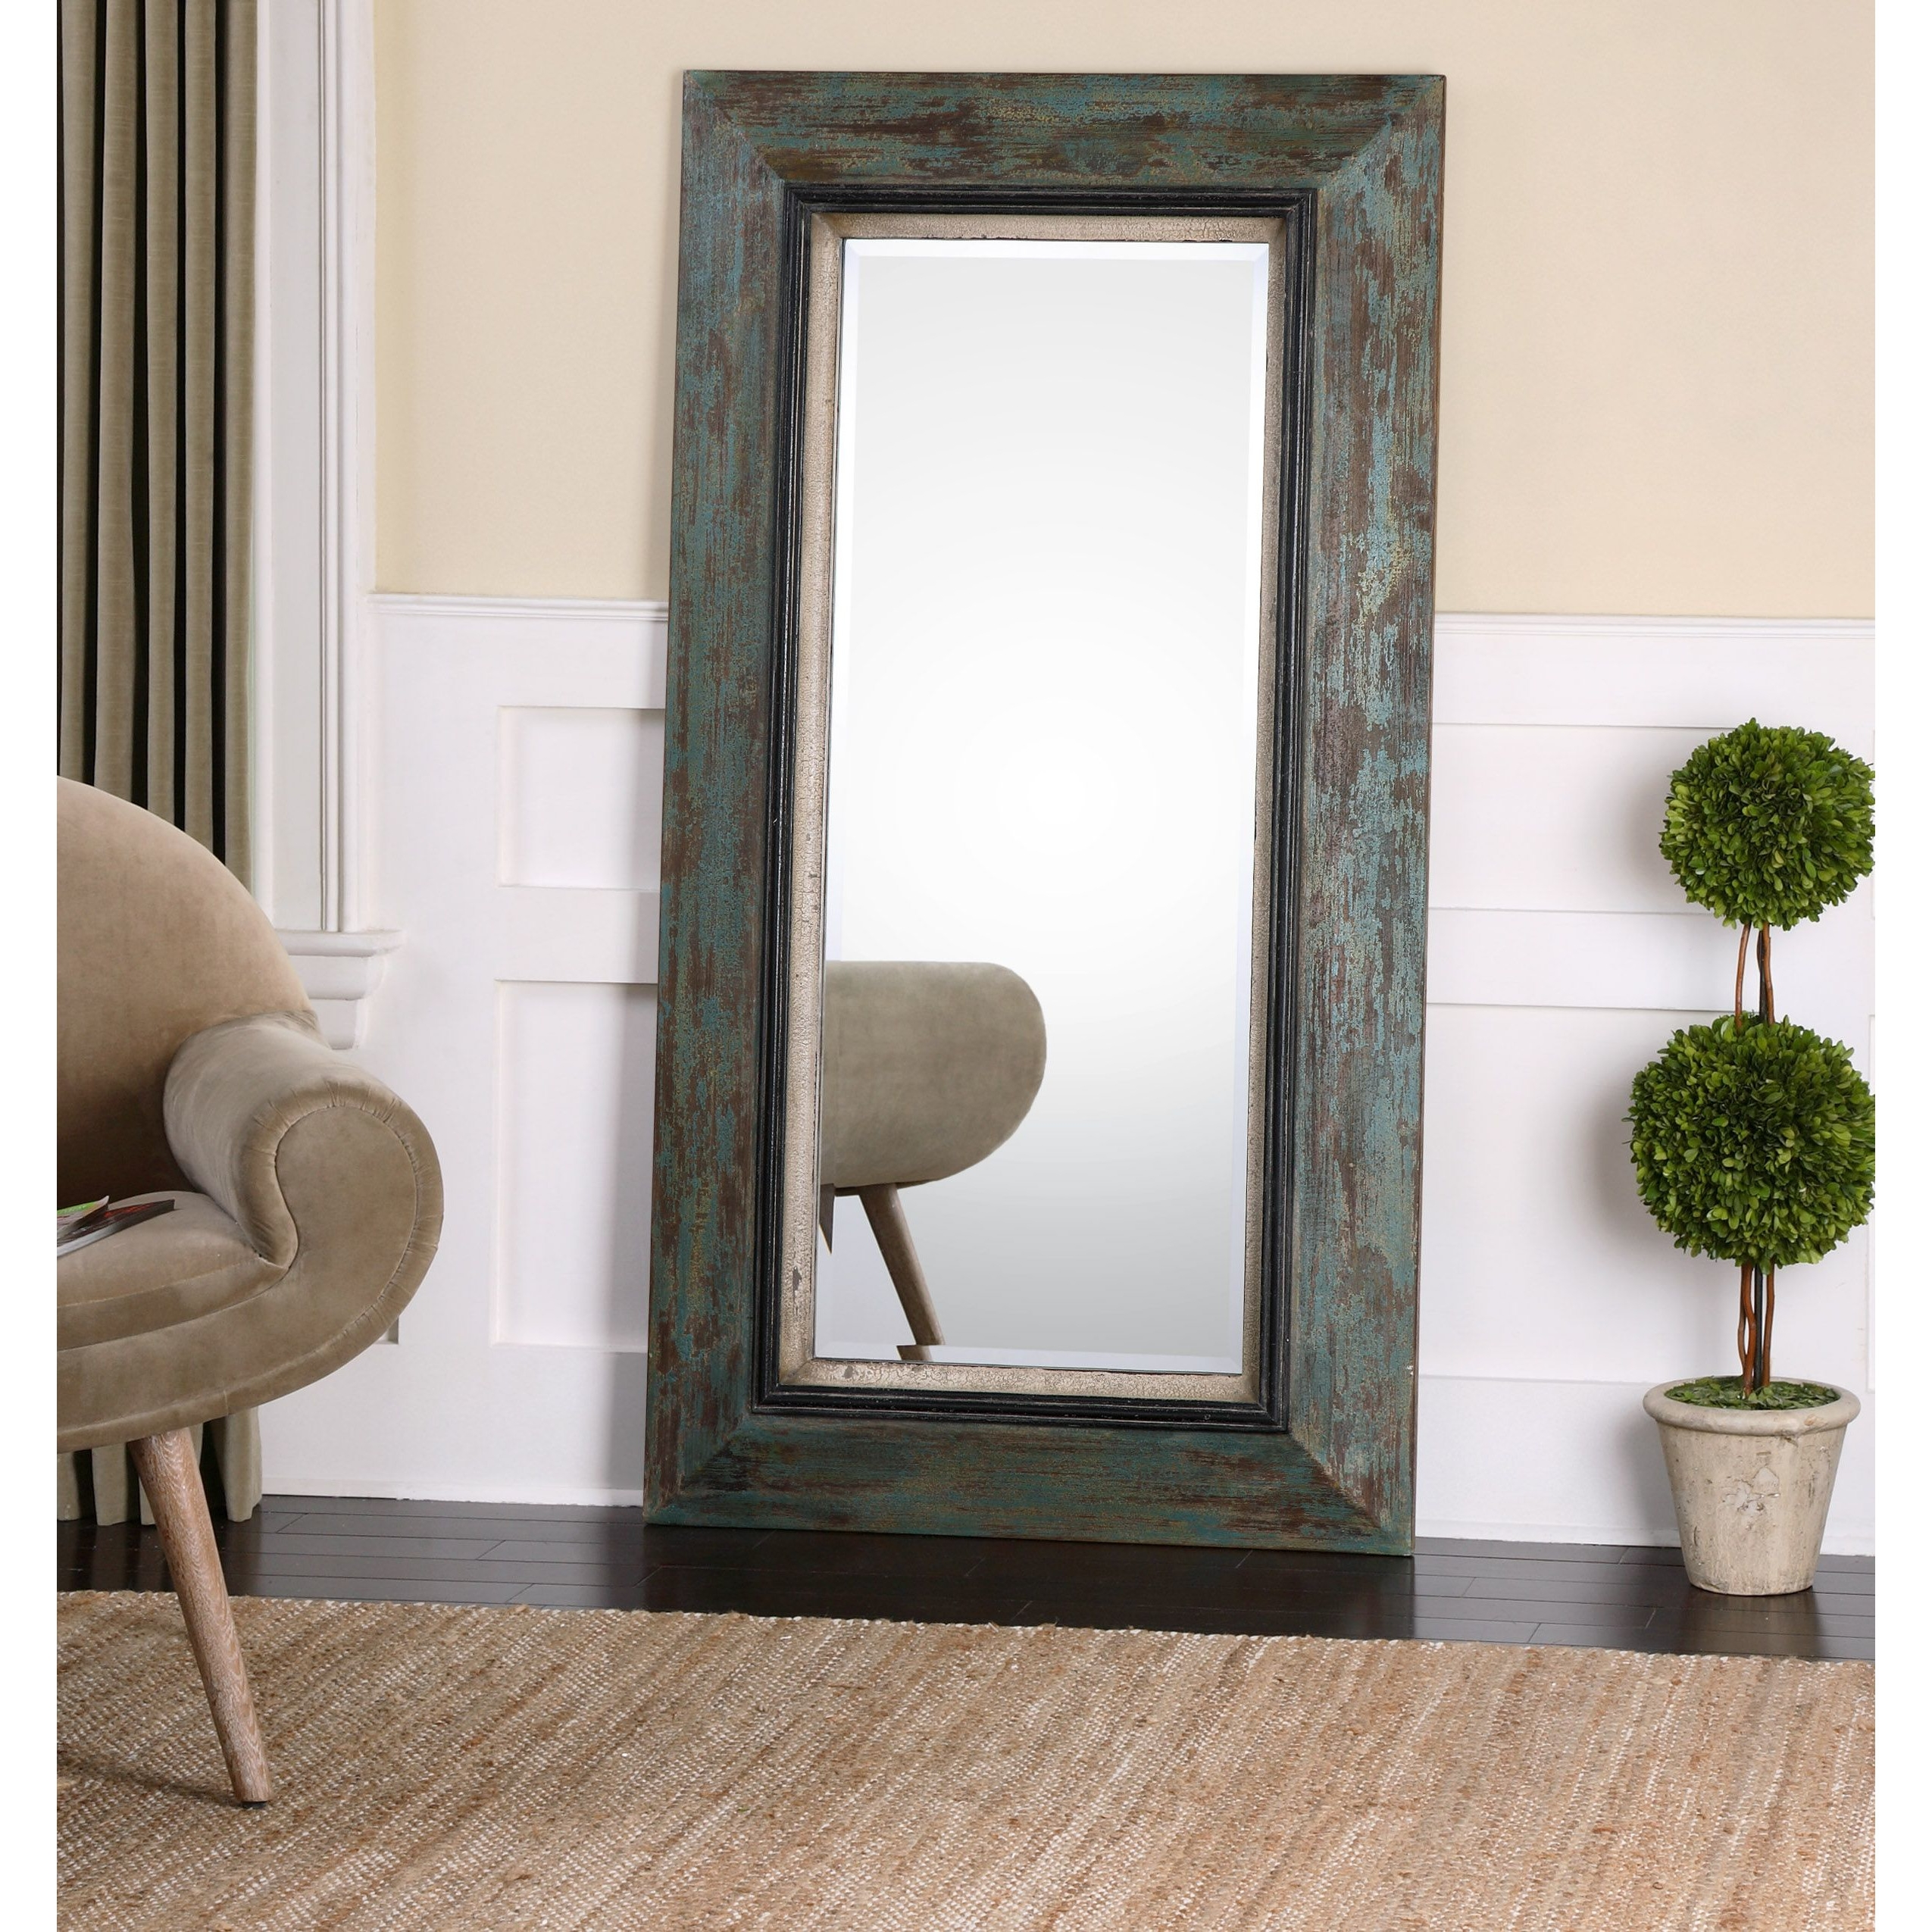 Large Floor Mirror Medium Size Of Mirror Ikea Furniture Mirrors Pertaining To Large Floor Length Mirror (View 13 of 15)